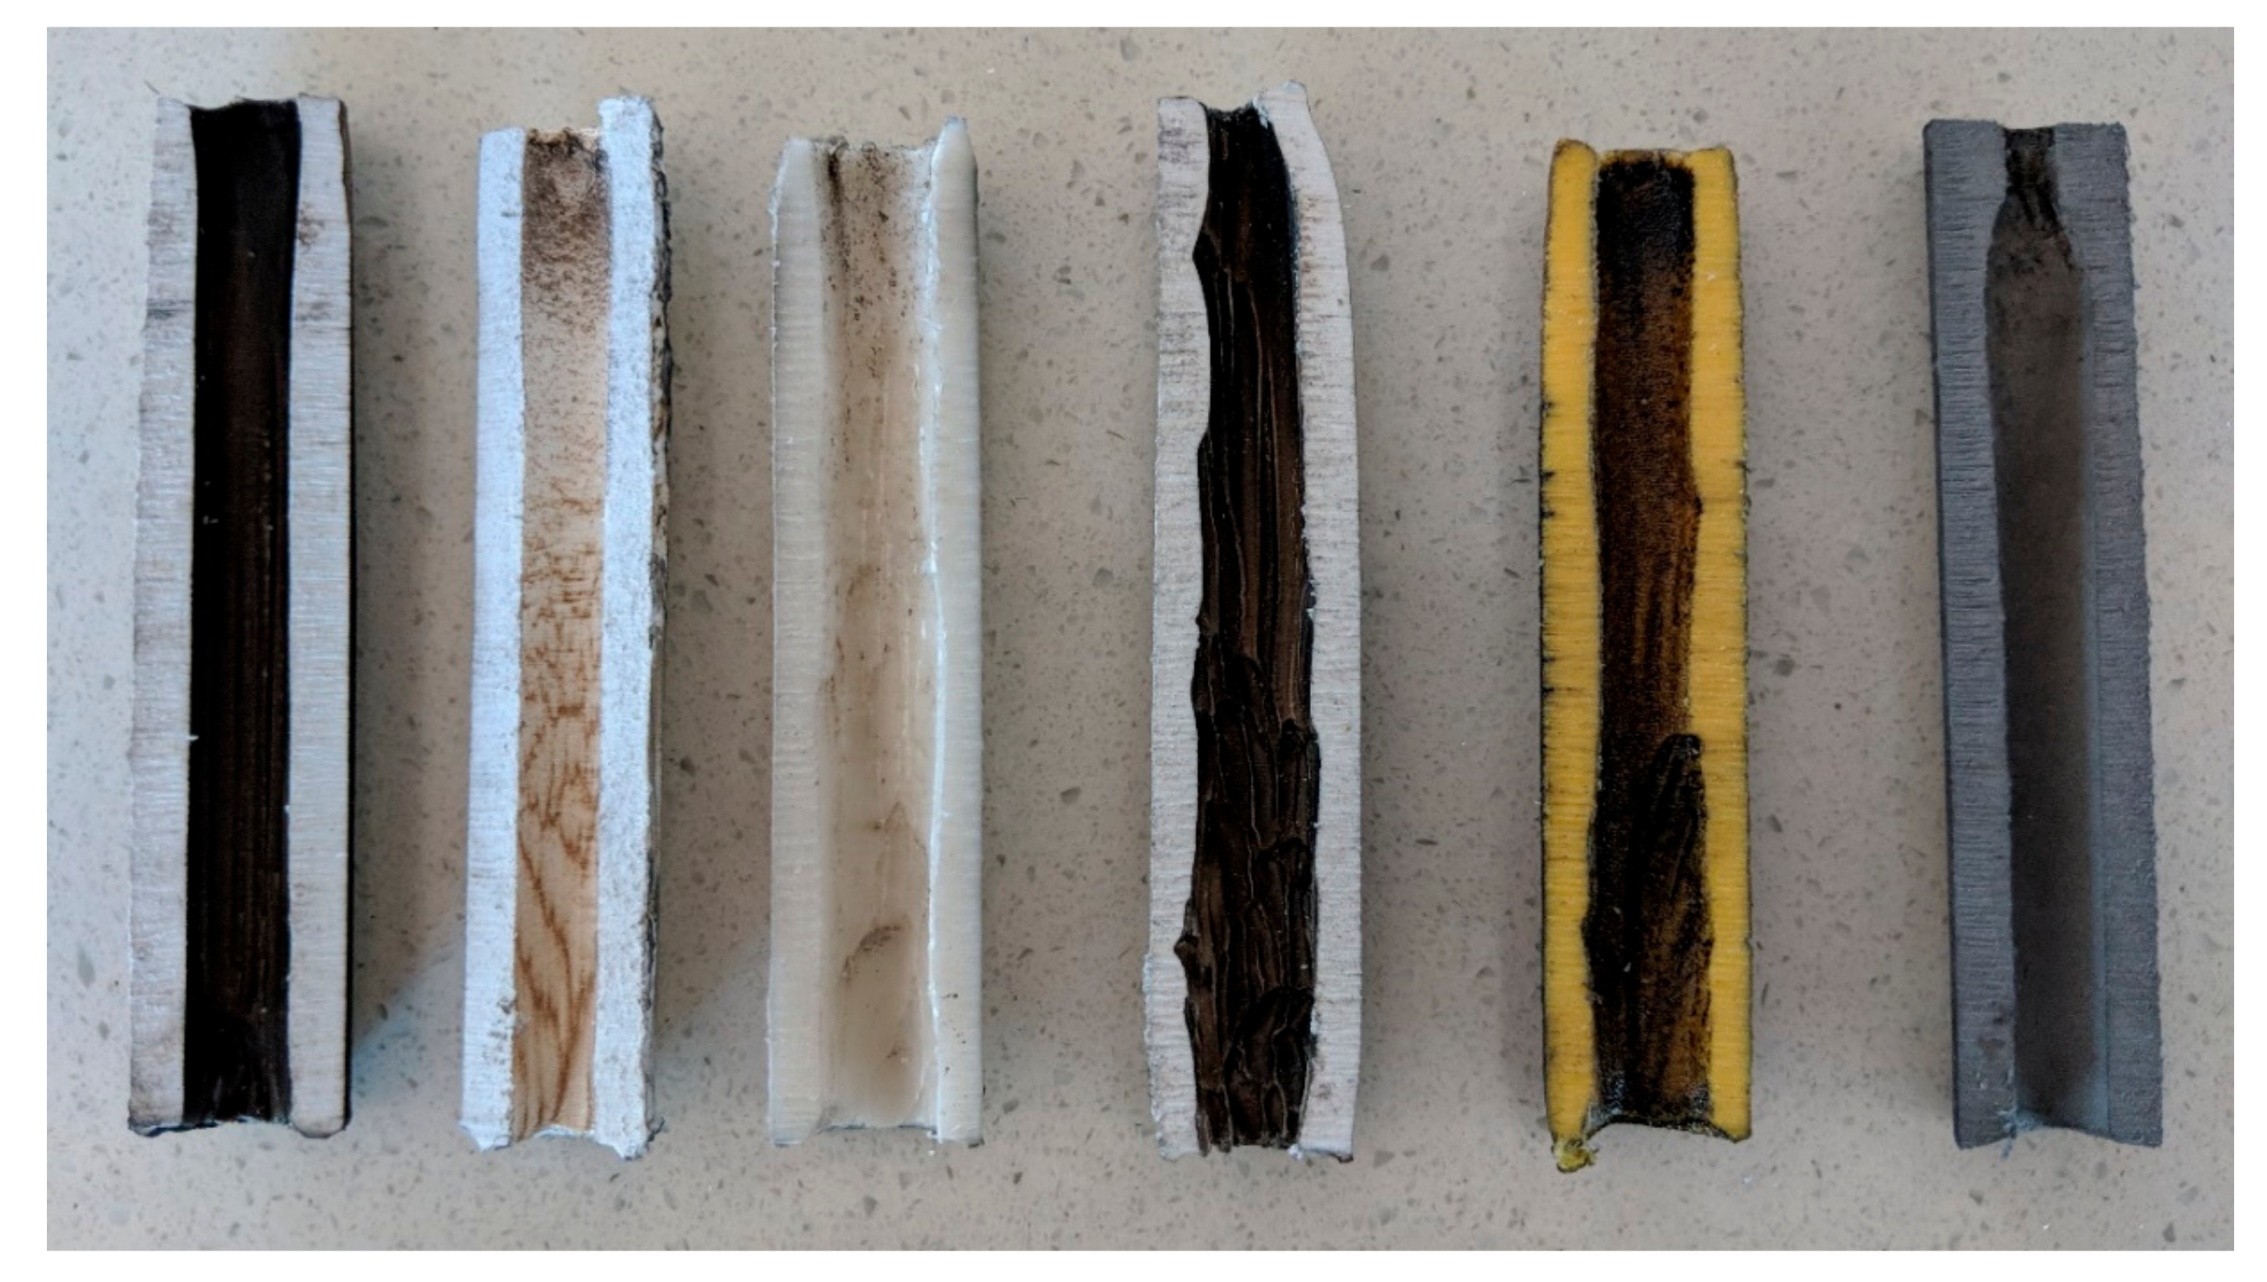 Cross section of each different small-scale fuel grain, left to right: ABS, PLA, PP, ASA, PTEG, and AL. Photo via JCU.